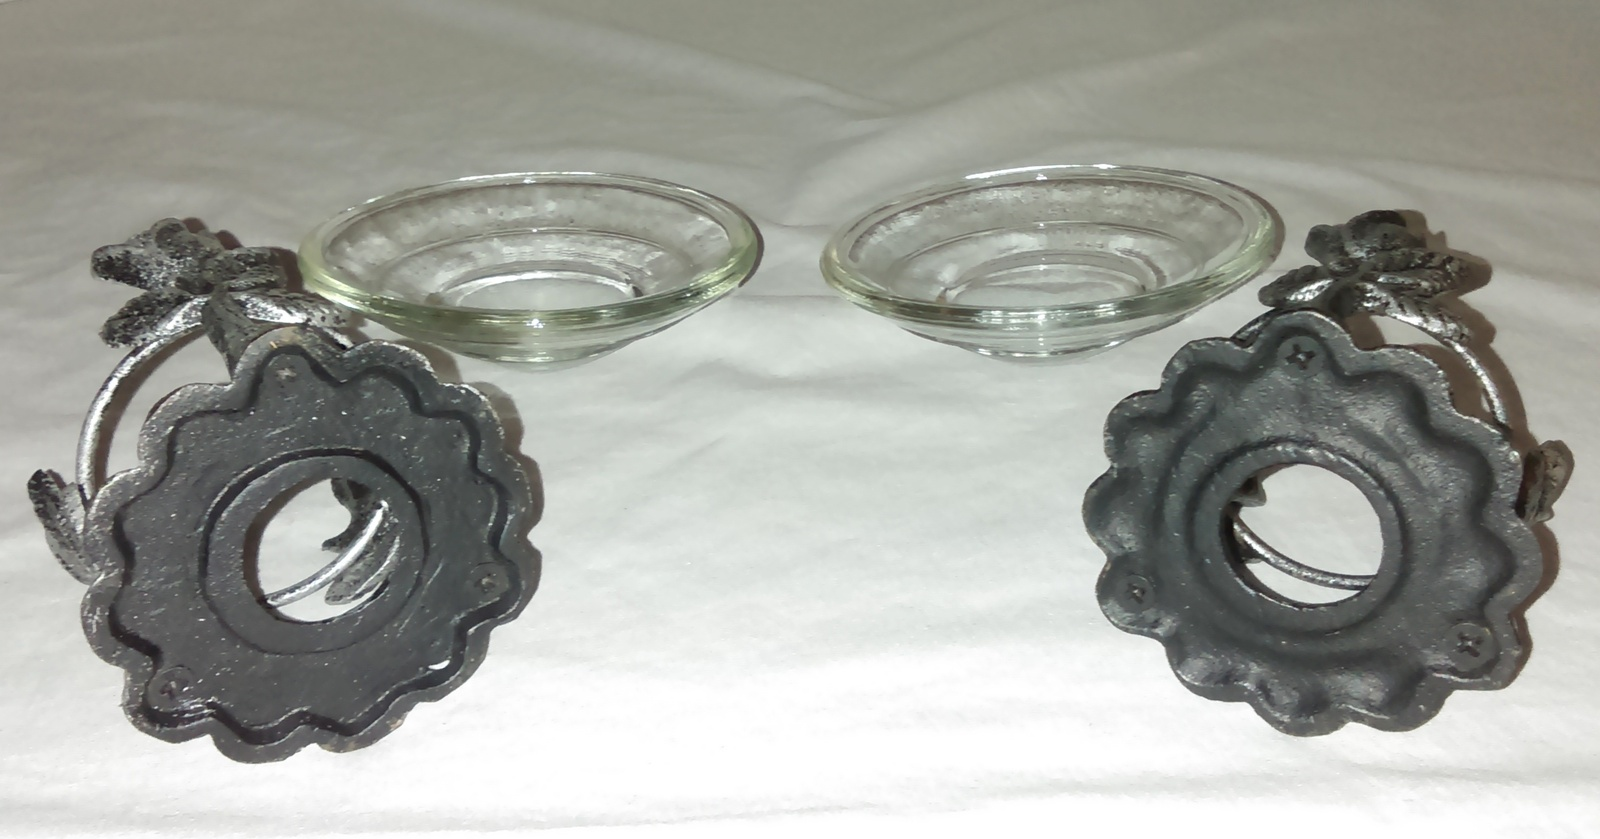 Aromatherapy Essential Oil Warmers w/Oil Glass Dishes/Metal Base - Set of 2